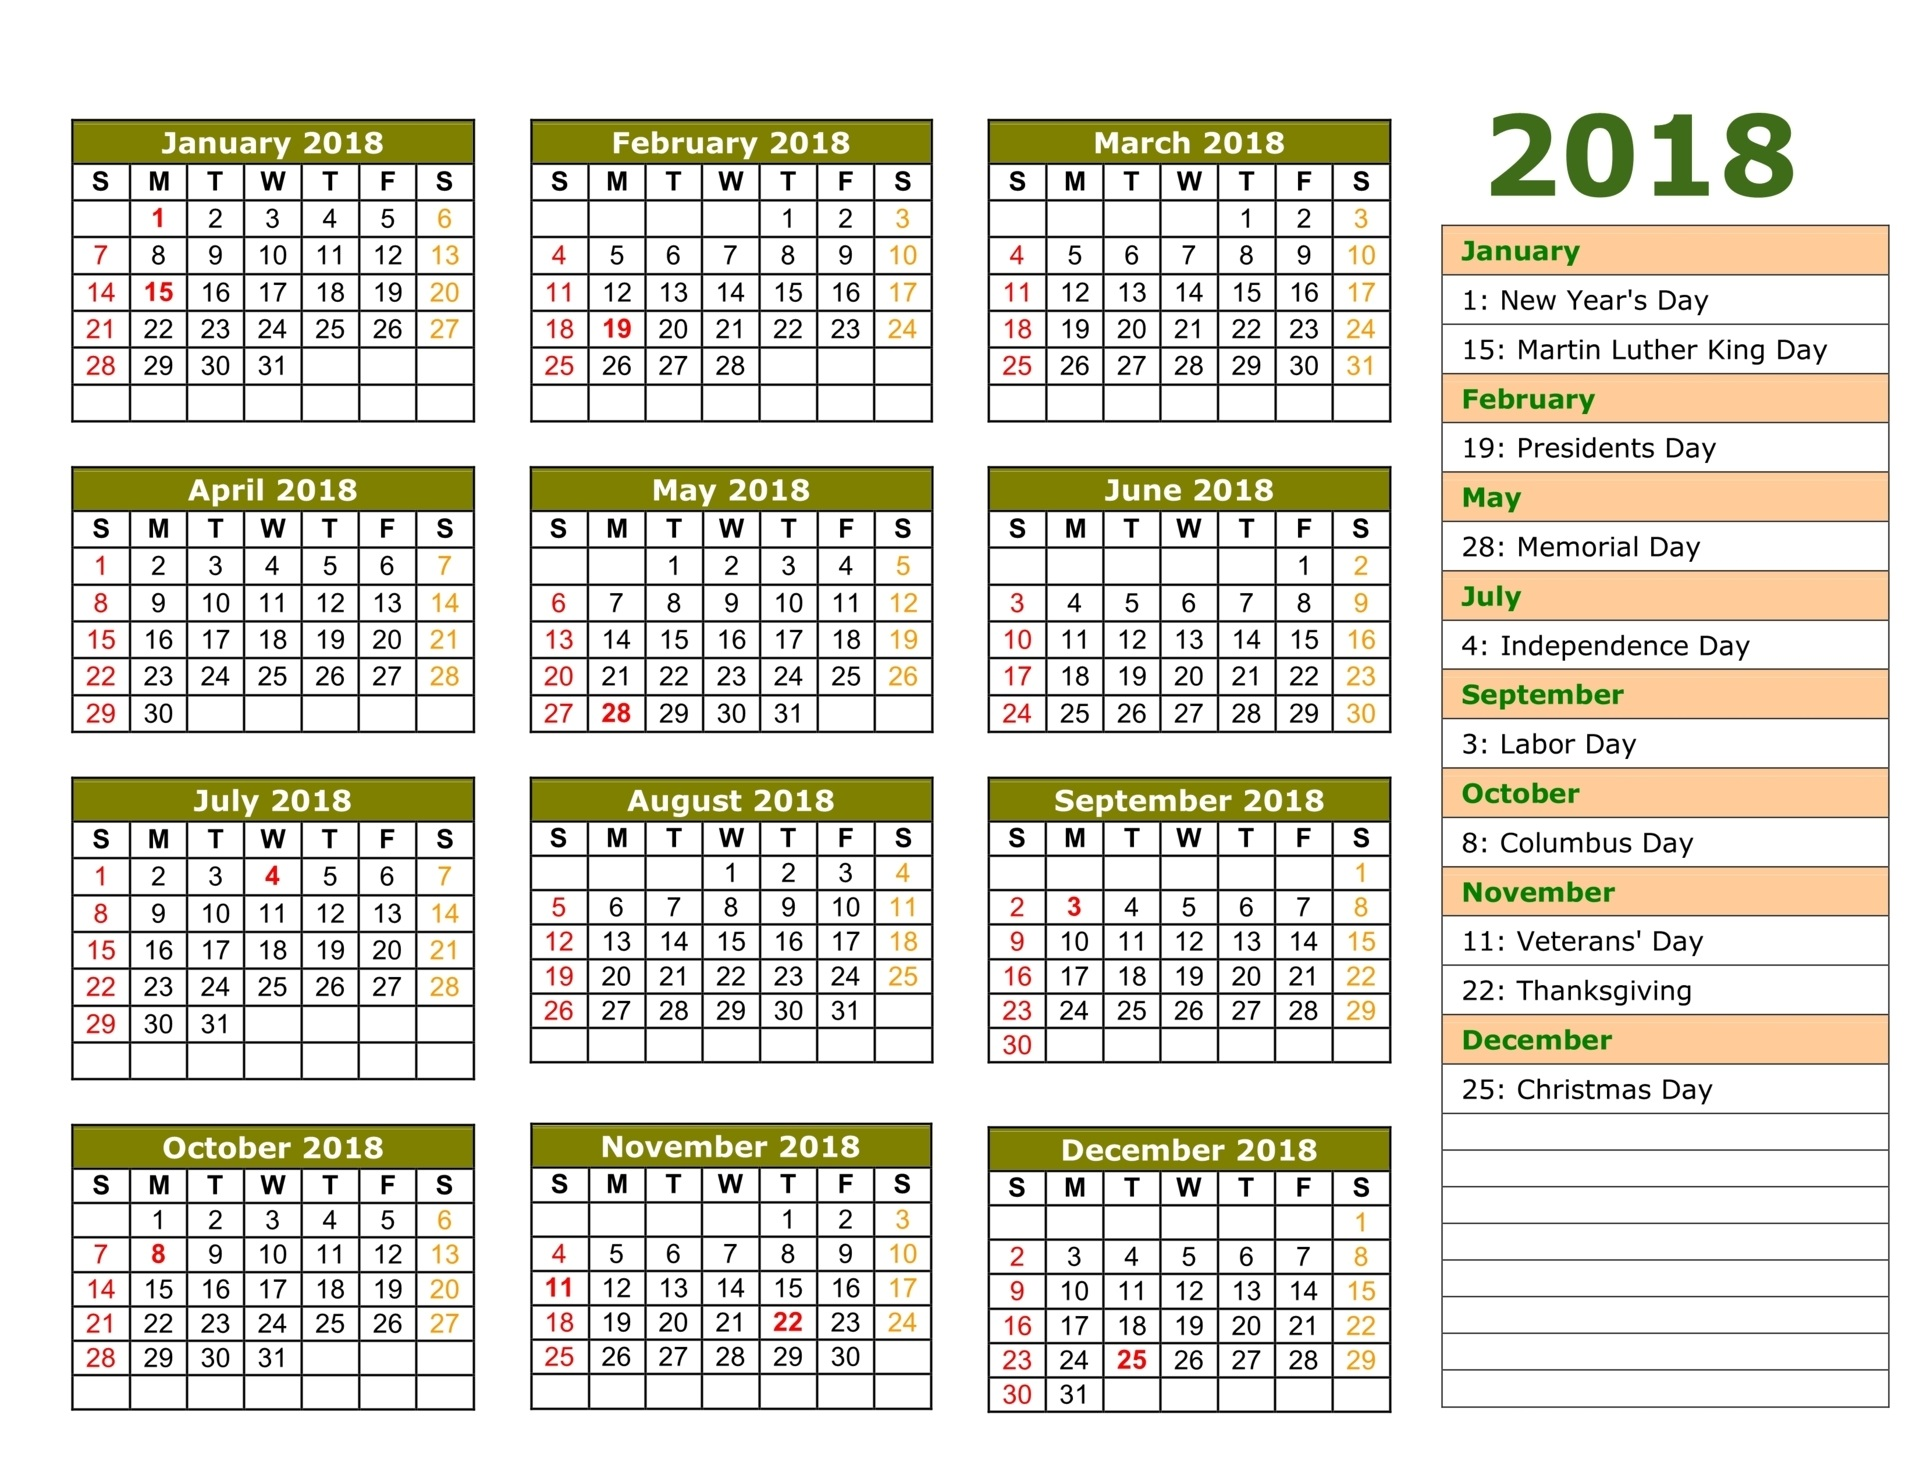 Free Calendars Jpg Calendar 2017 Download Printable 2017 Calendar Pdf Calendar 2018 India 3 2018 Calendar Printable For Free